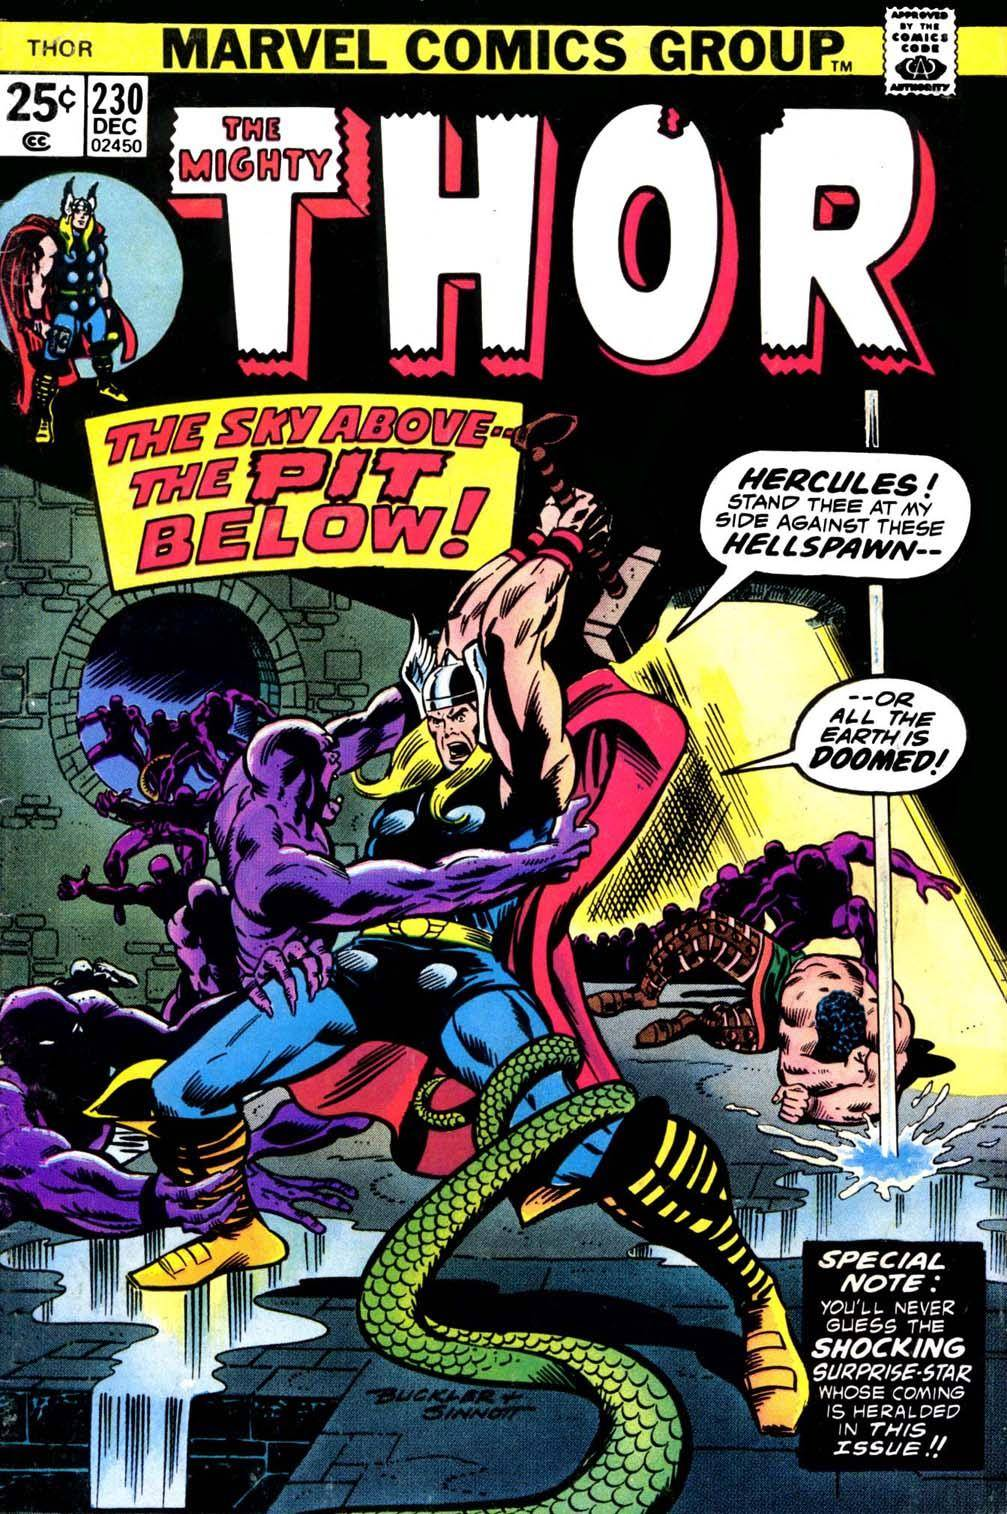 For Wylekyot The Mighty Thor v1 230 cbr